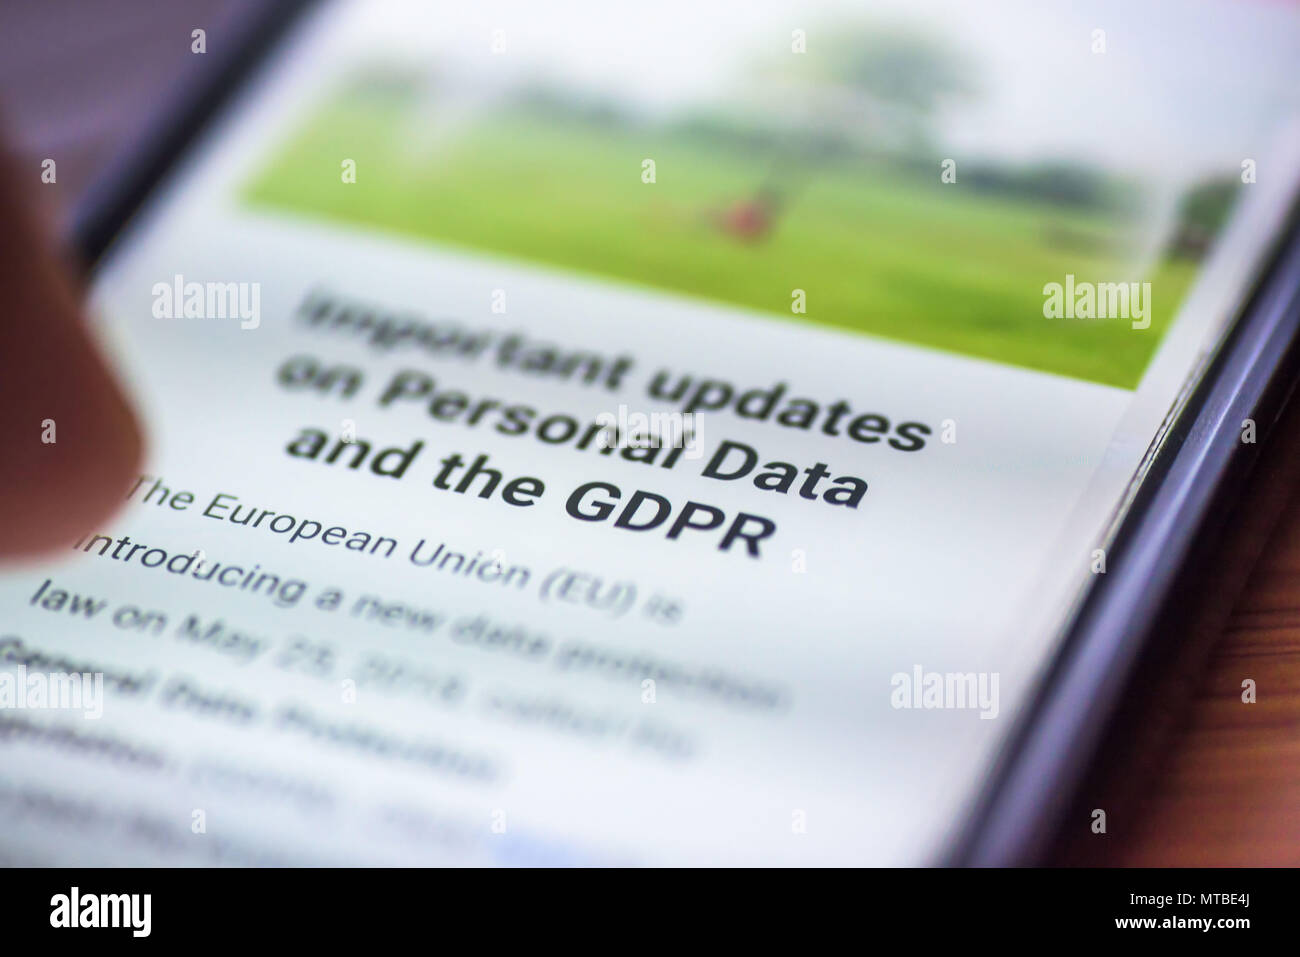 General Data Protection Regulation - closeup human finger pointing to smartphone screen message with text GDPR. - Stock Image